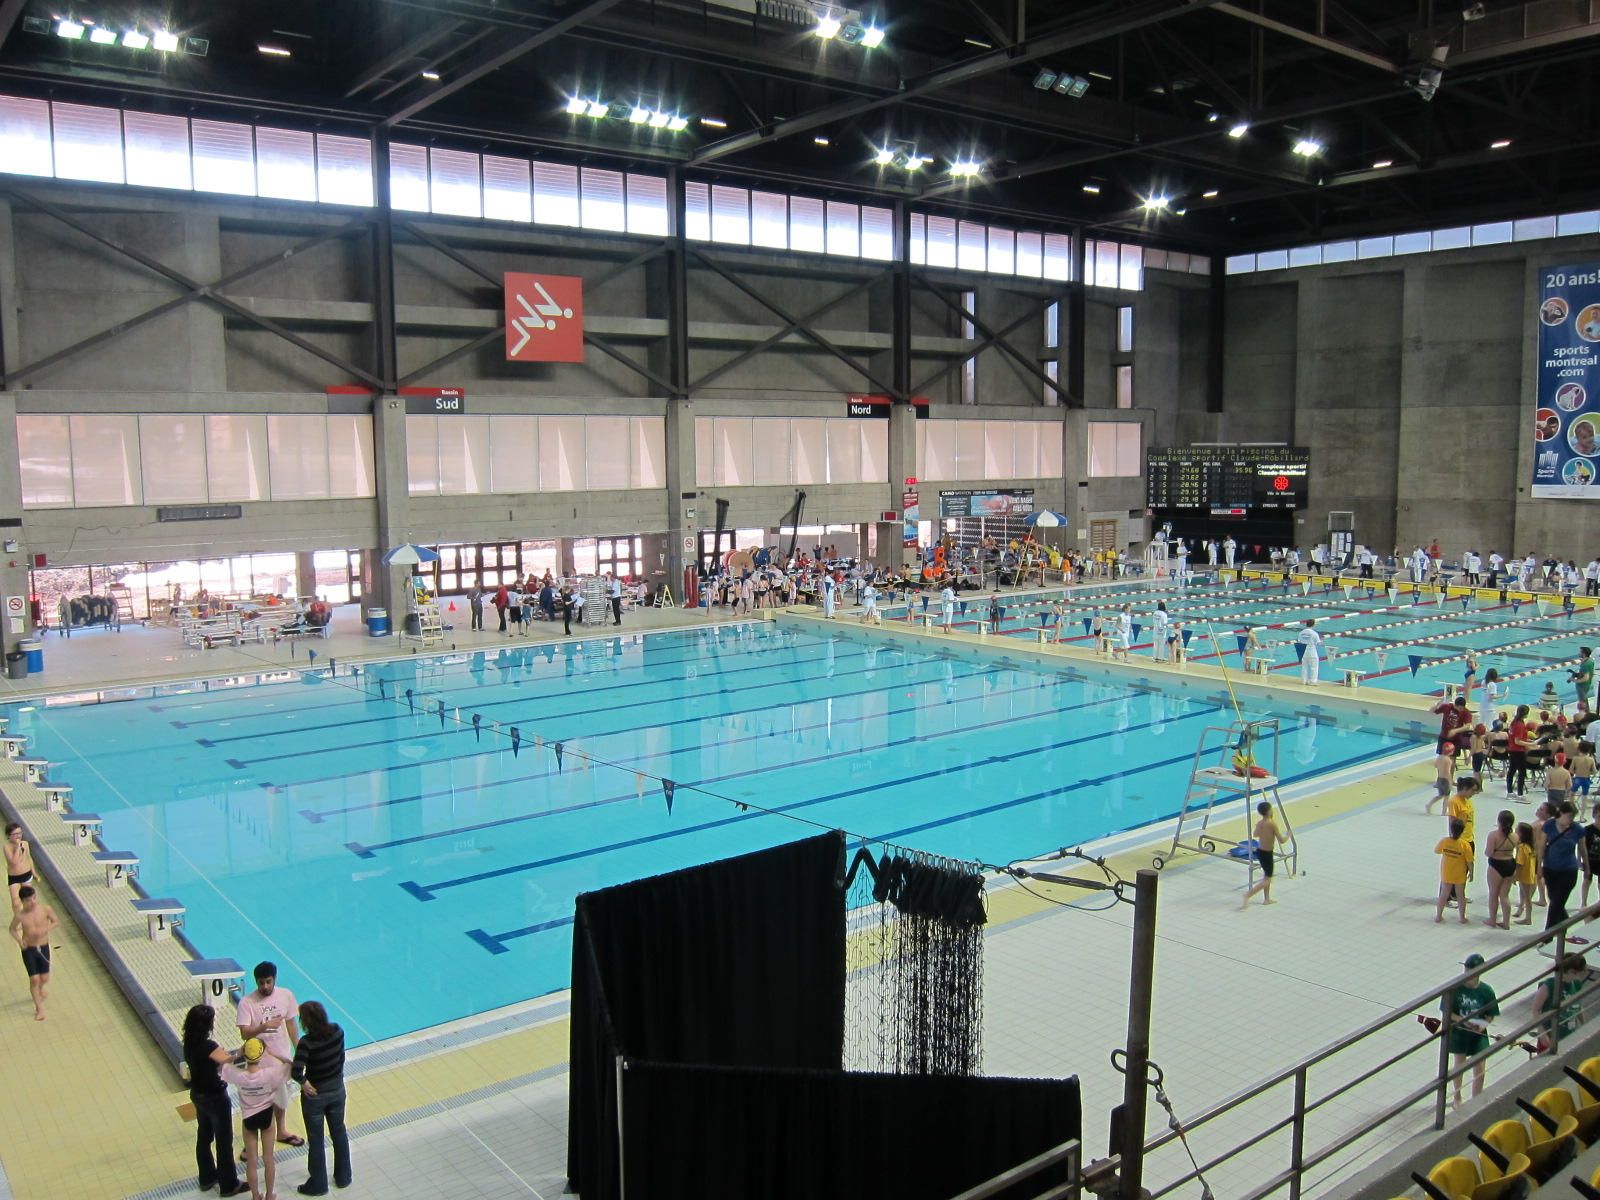 Natation vasion cr6 for Claude robillard piscine